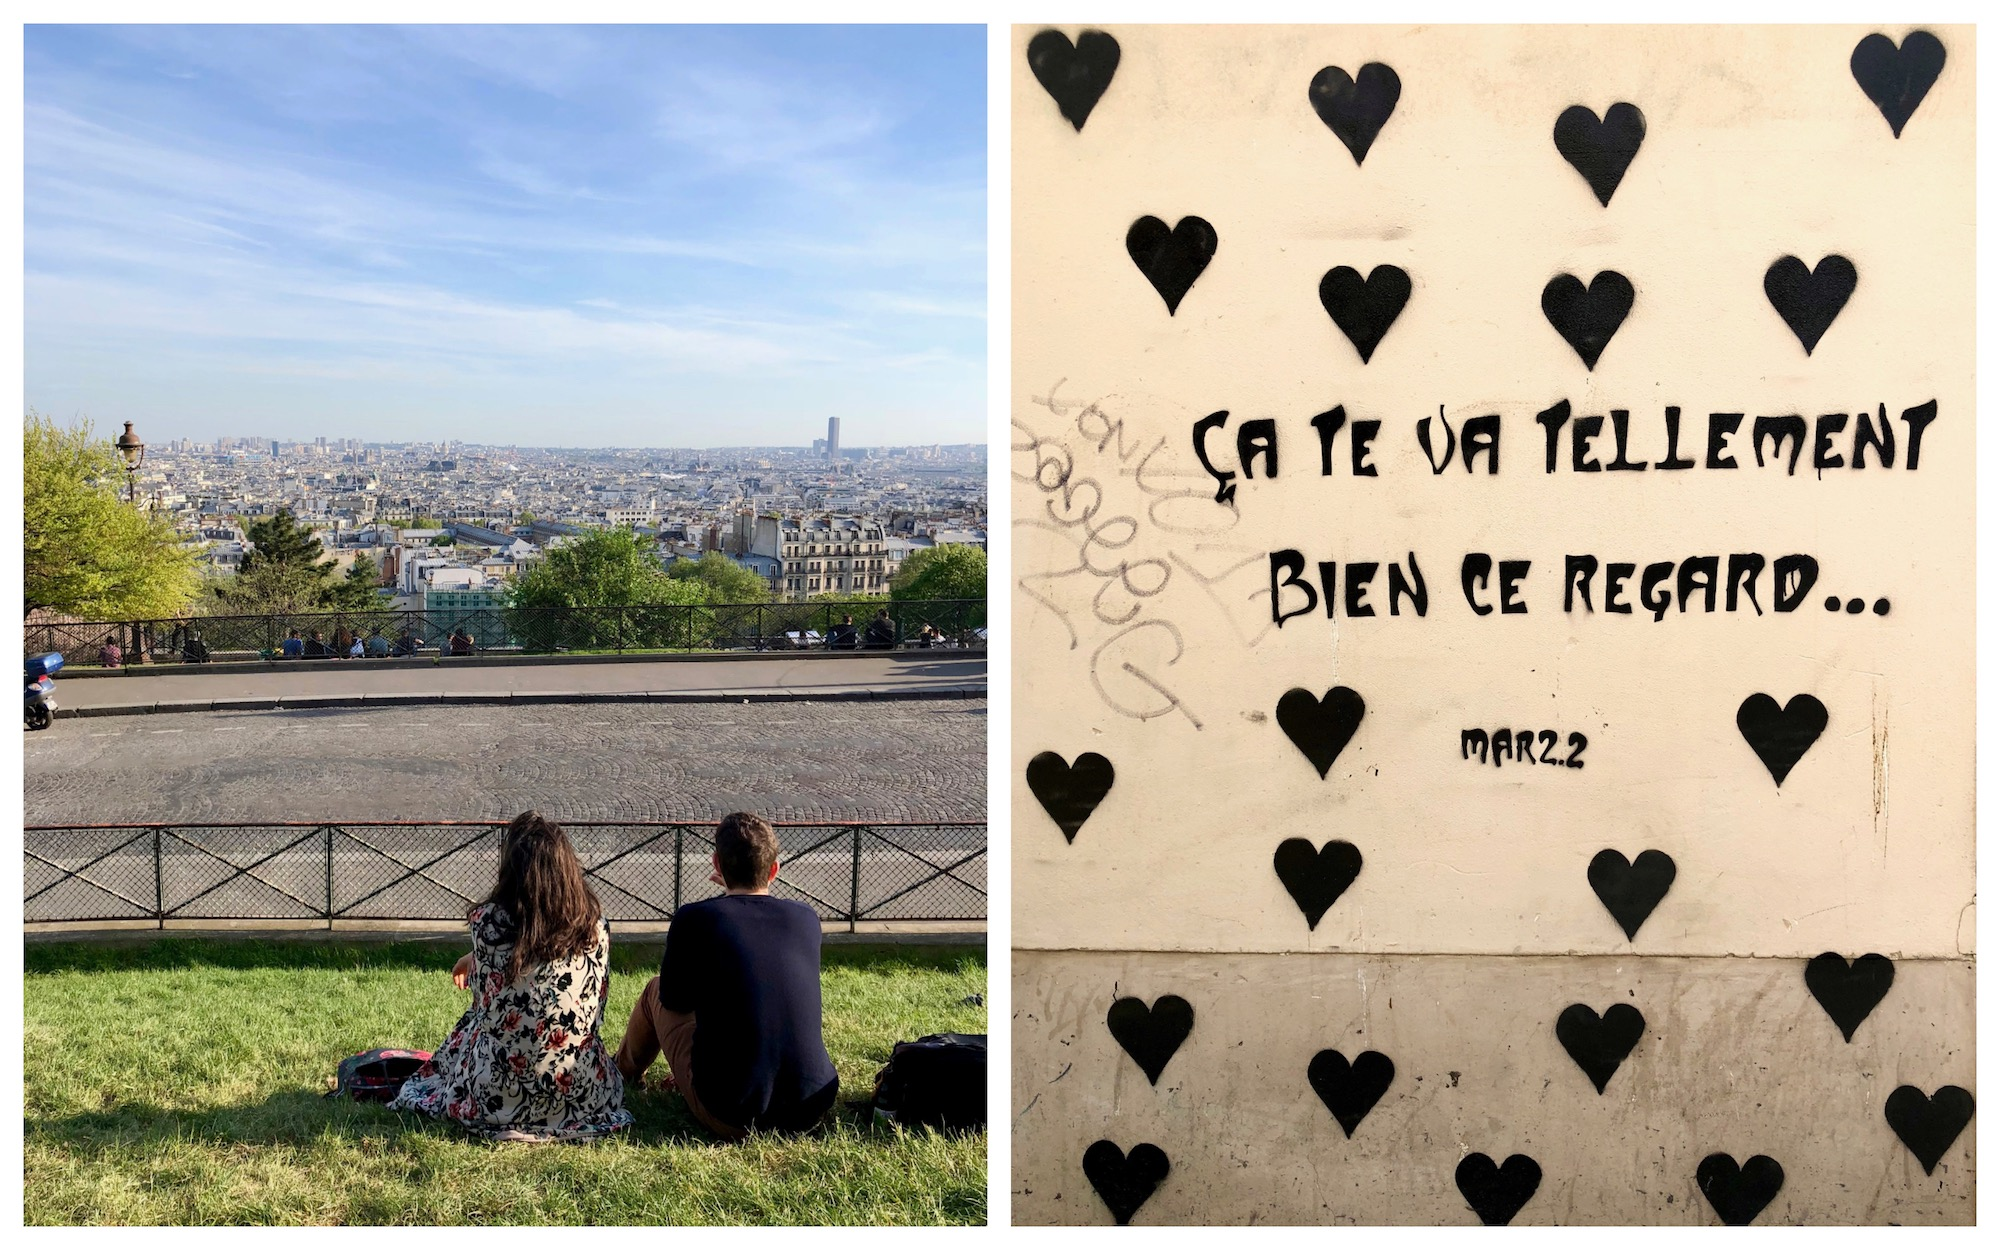 Learning French in Paris is easiest when you make friends so you can practise, like this young woman and man looking out at the views of the Paris rooftops in Montmartre (left). It also means you can understand the street art in Paris like this piece: that look in your eyes suits you so well.